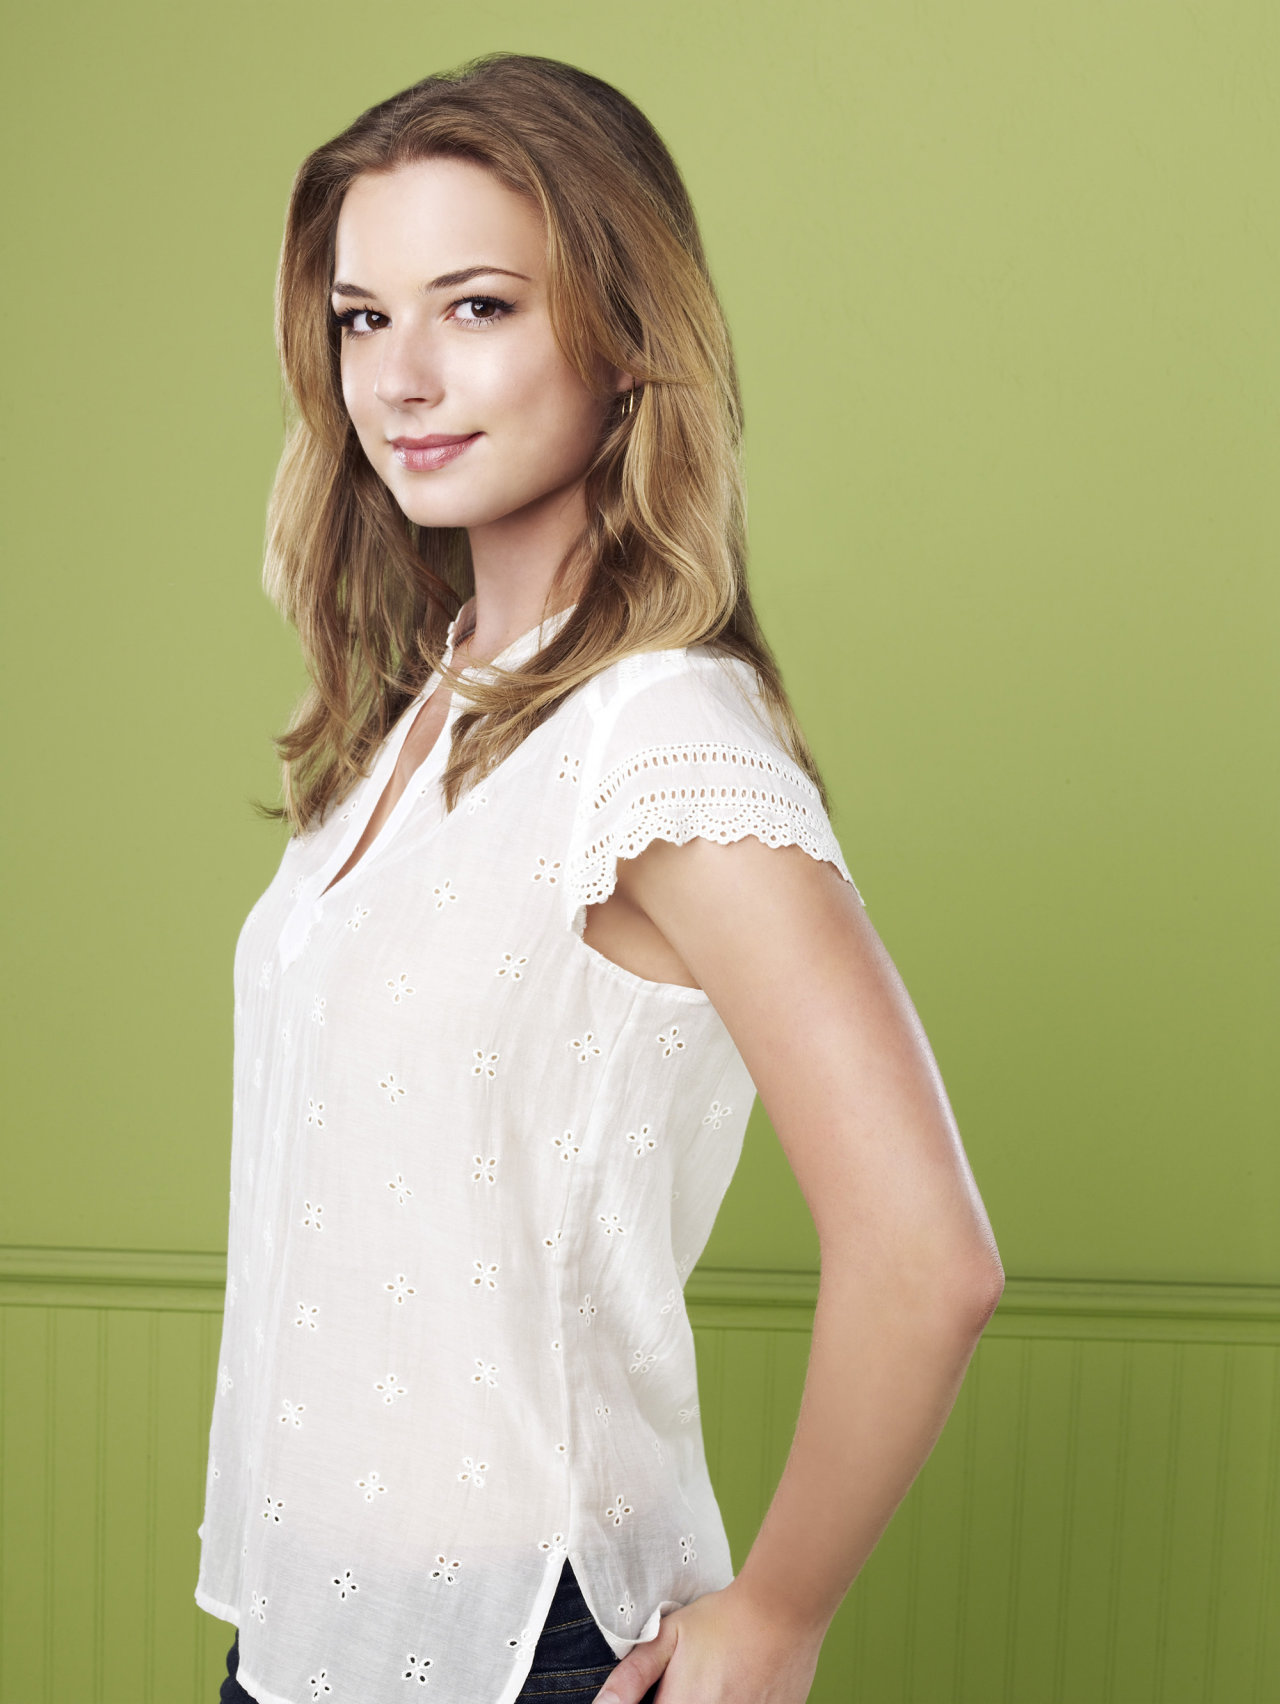 Emily VanCamp leaked wallpapers